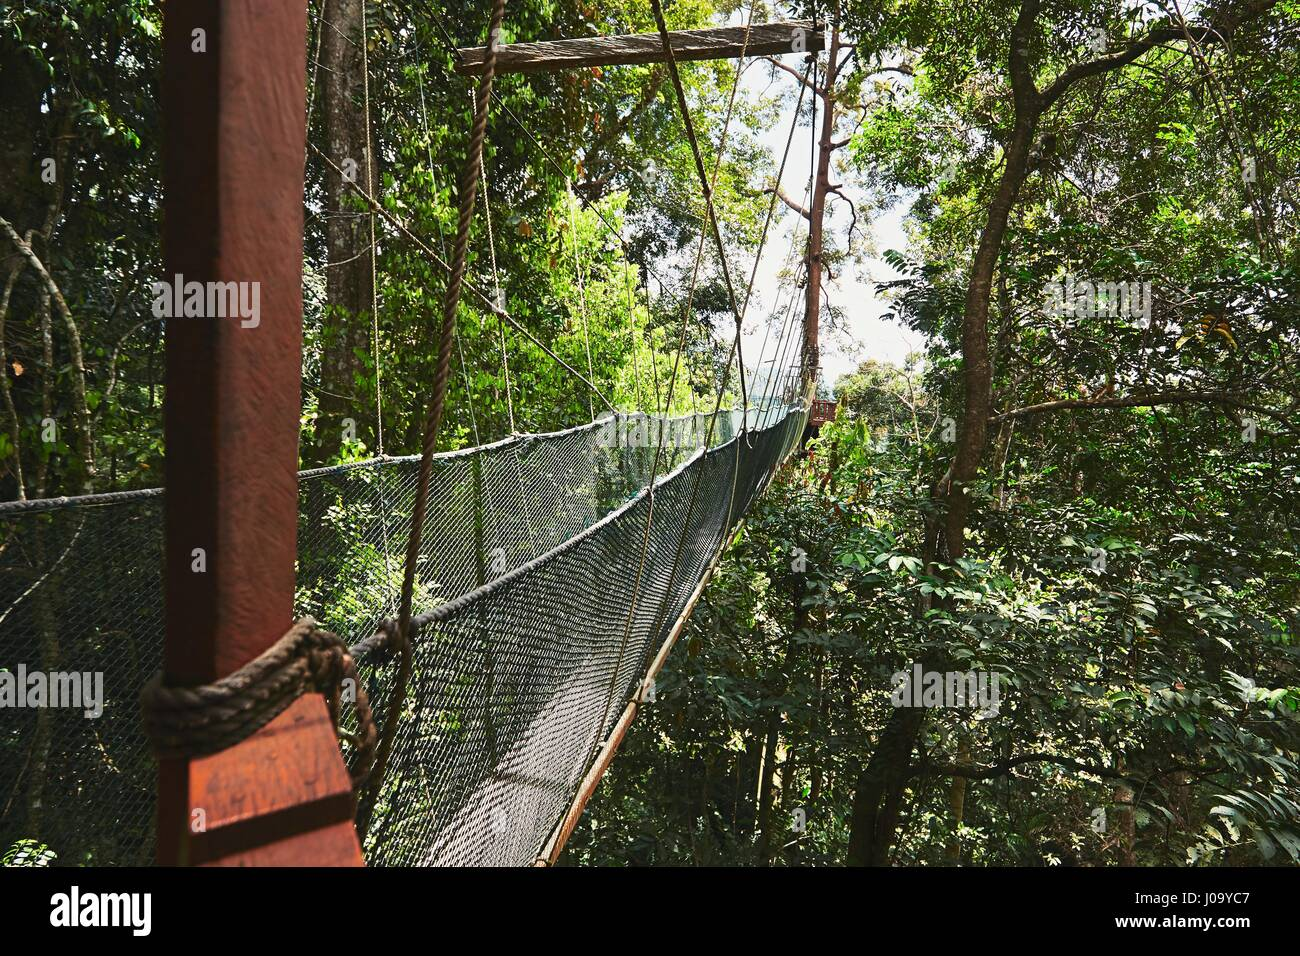 Long elevated walkway through the treetops in rainforest - Borneo, Malaysia Stock Photo